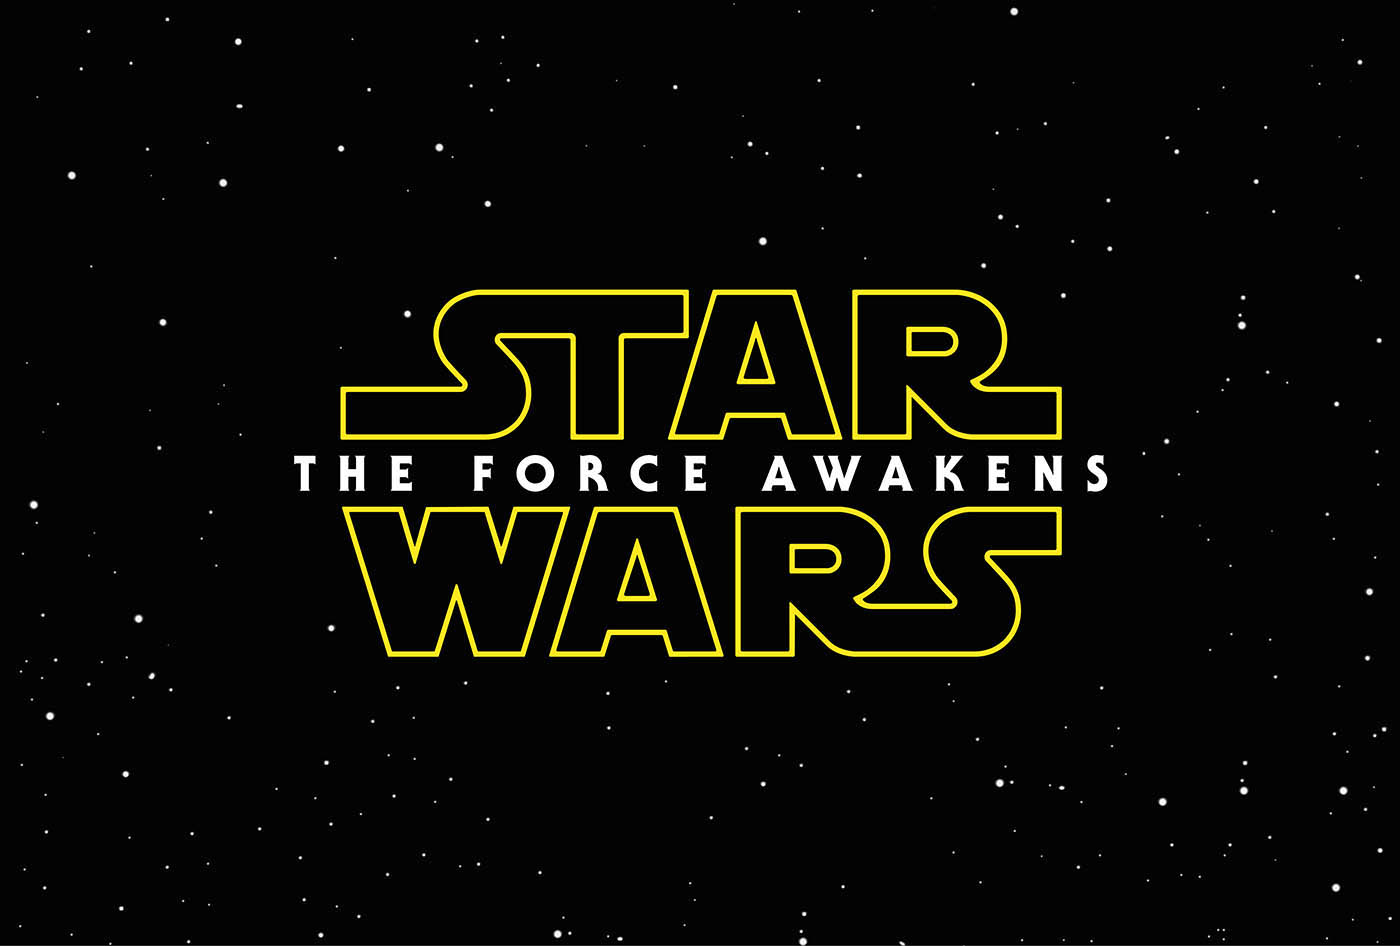 STAR WARS: The Force Awakens Parent Review - No spoilers!